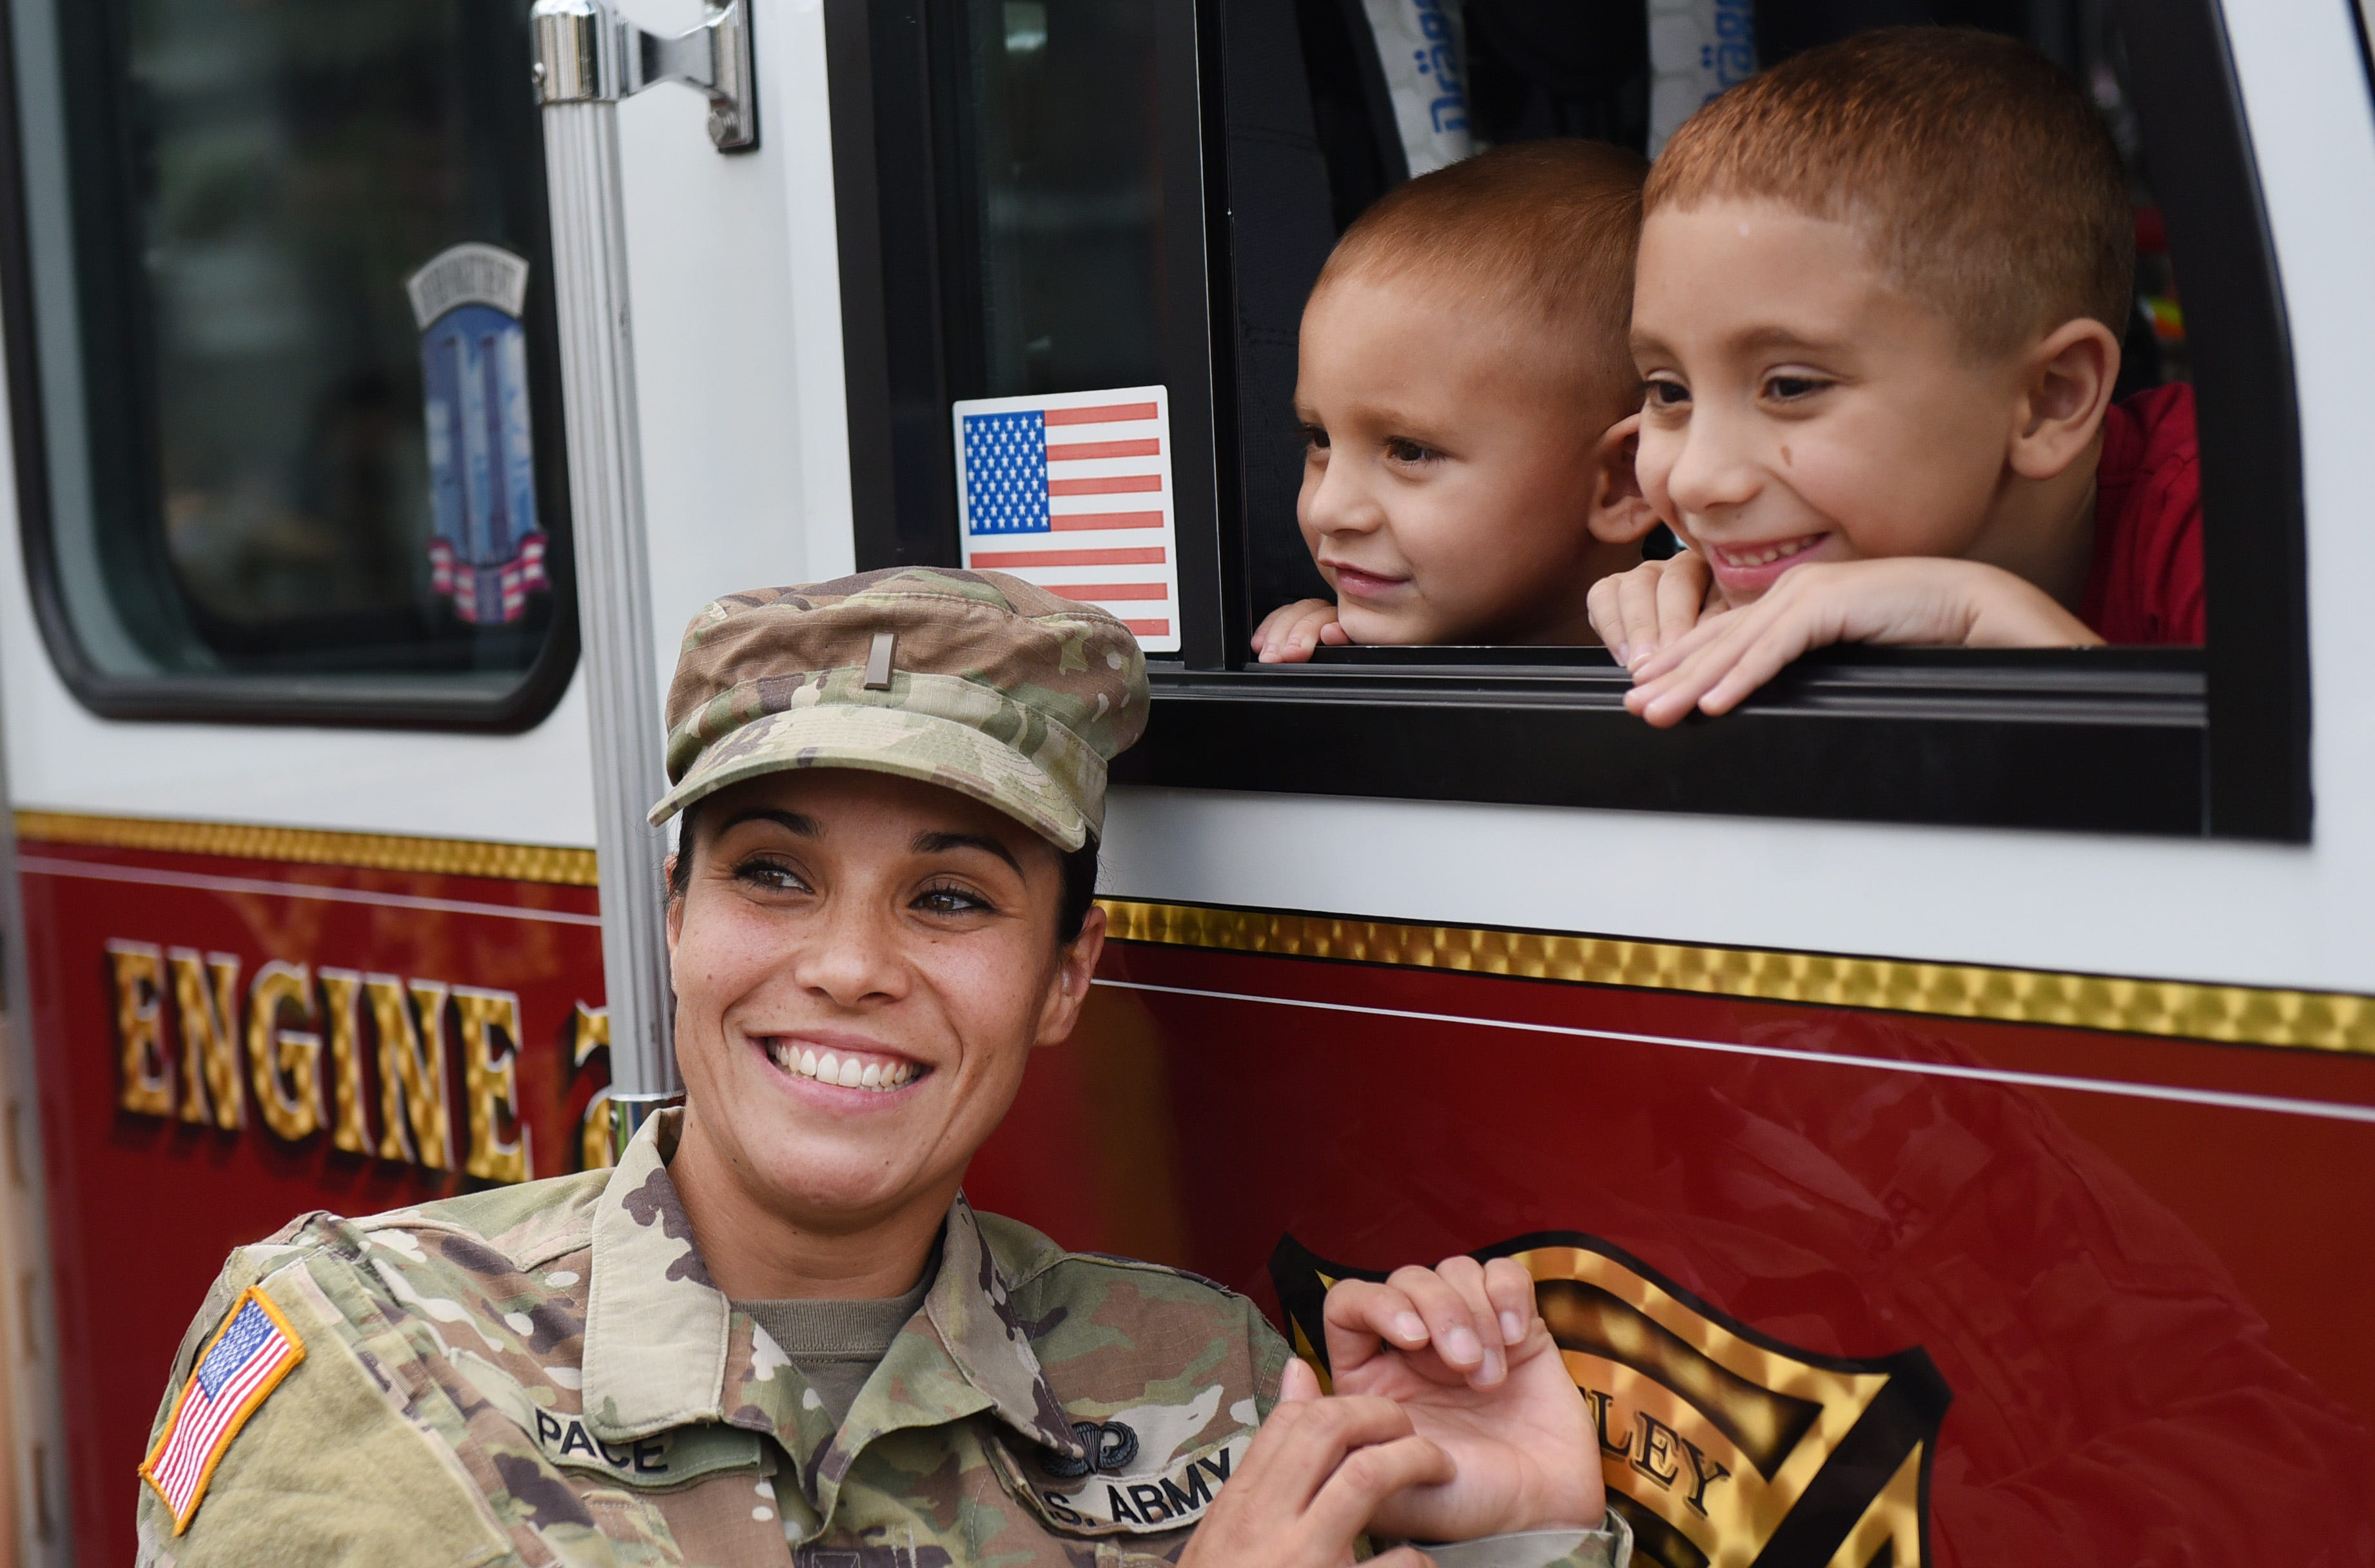 These Military Kids Had the Sweetest Reunion After Being Apart for 17 Months